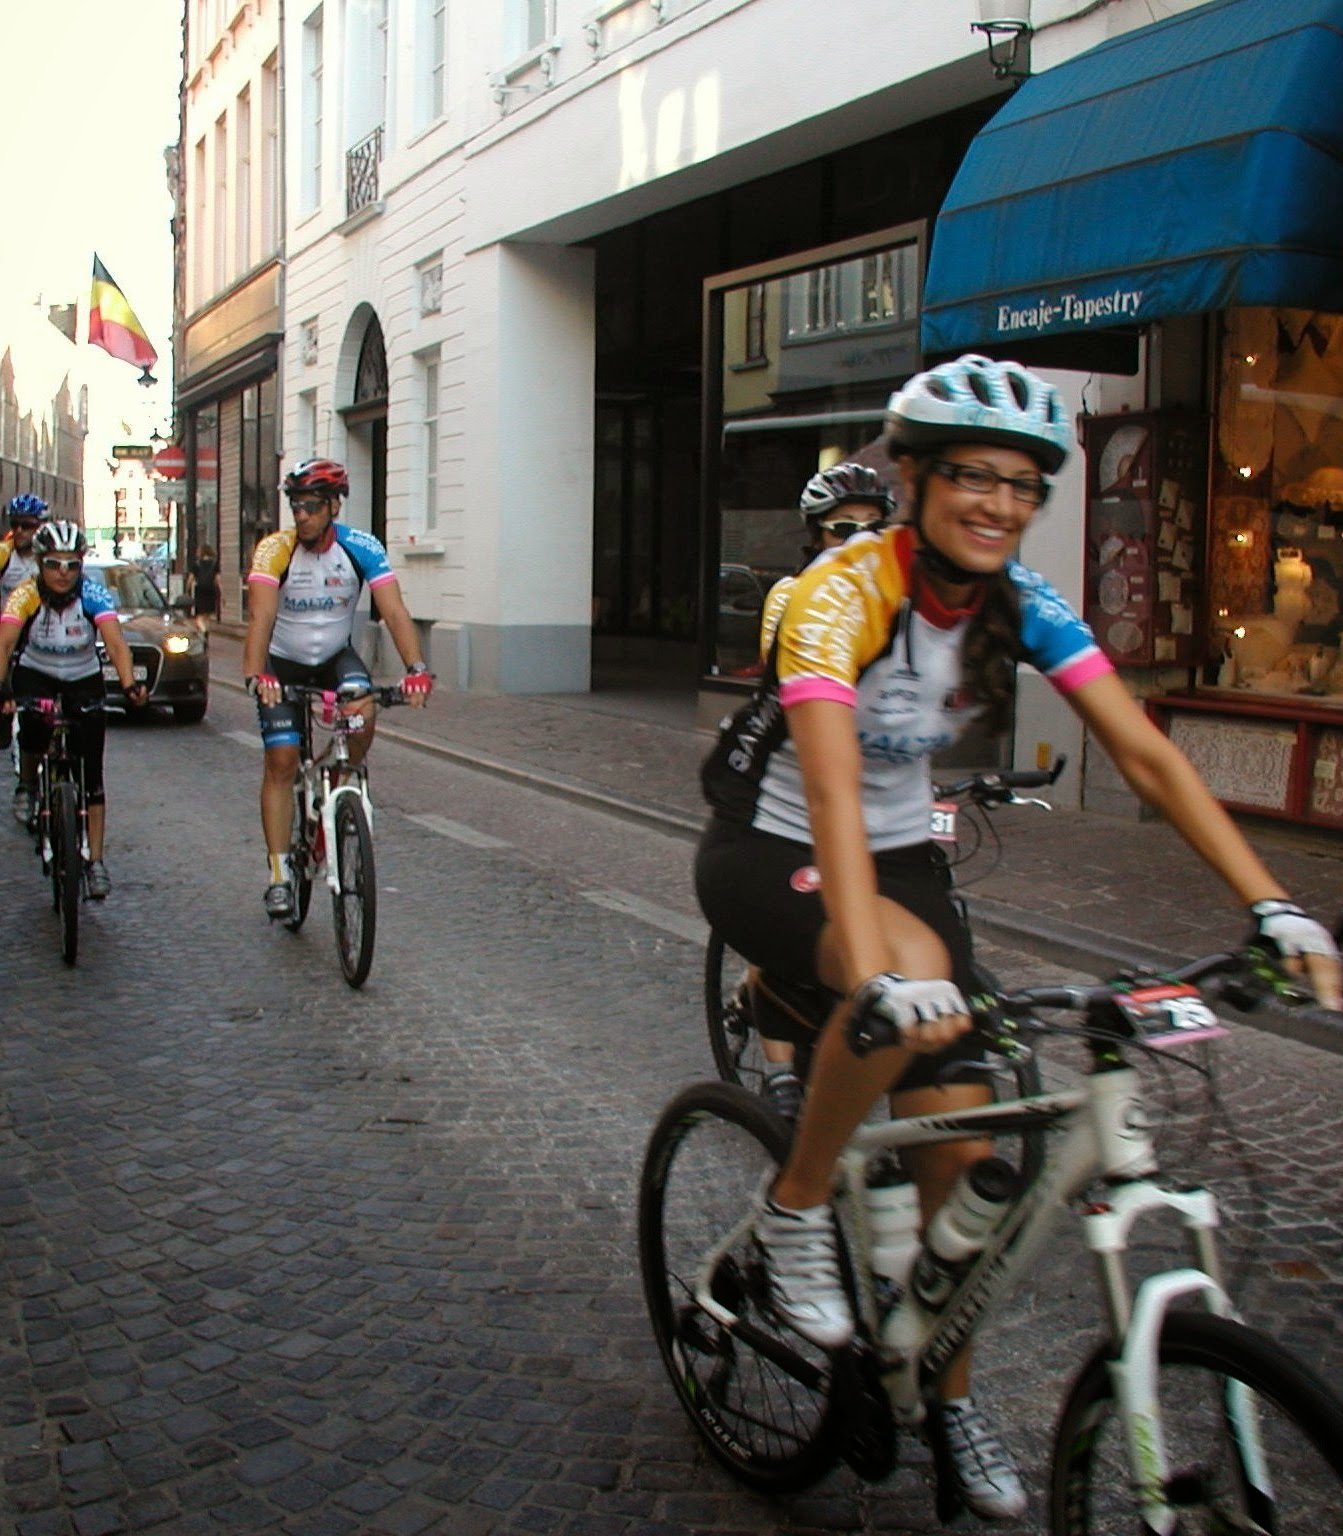 Cycling the cobbled streets while cycling the London to Paris Bike